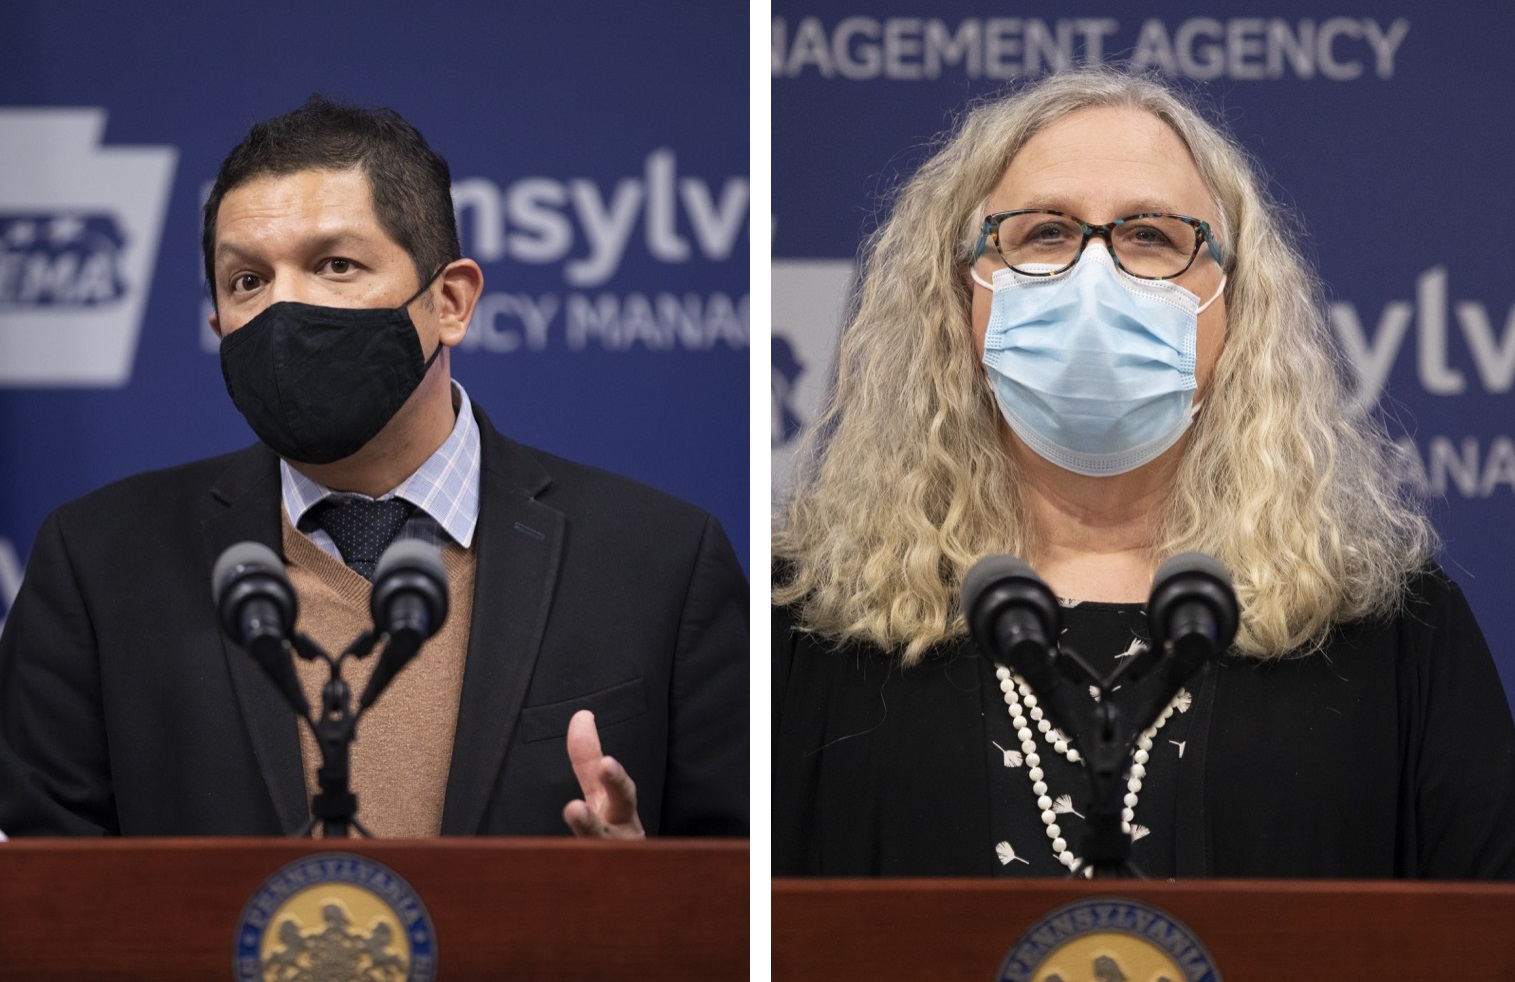 Acting Secretary of Education Noe Ortega , left, and Health Secretary Dr. Rachel Levine, right, speak at a virtual press conference on Monday, Nov. 30, 2020. (Source: Commonwealth of Pa.)